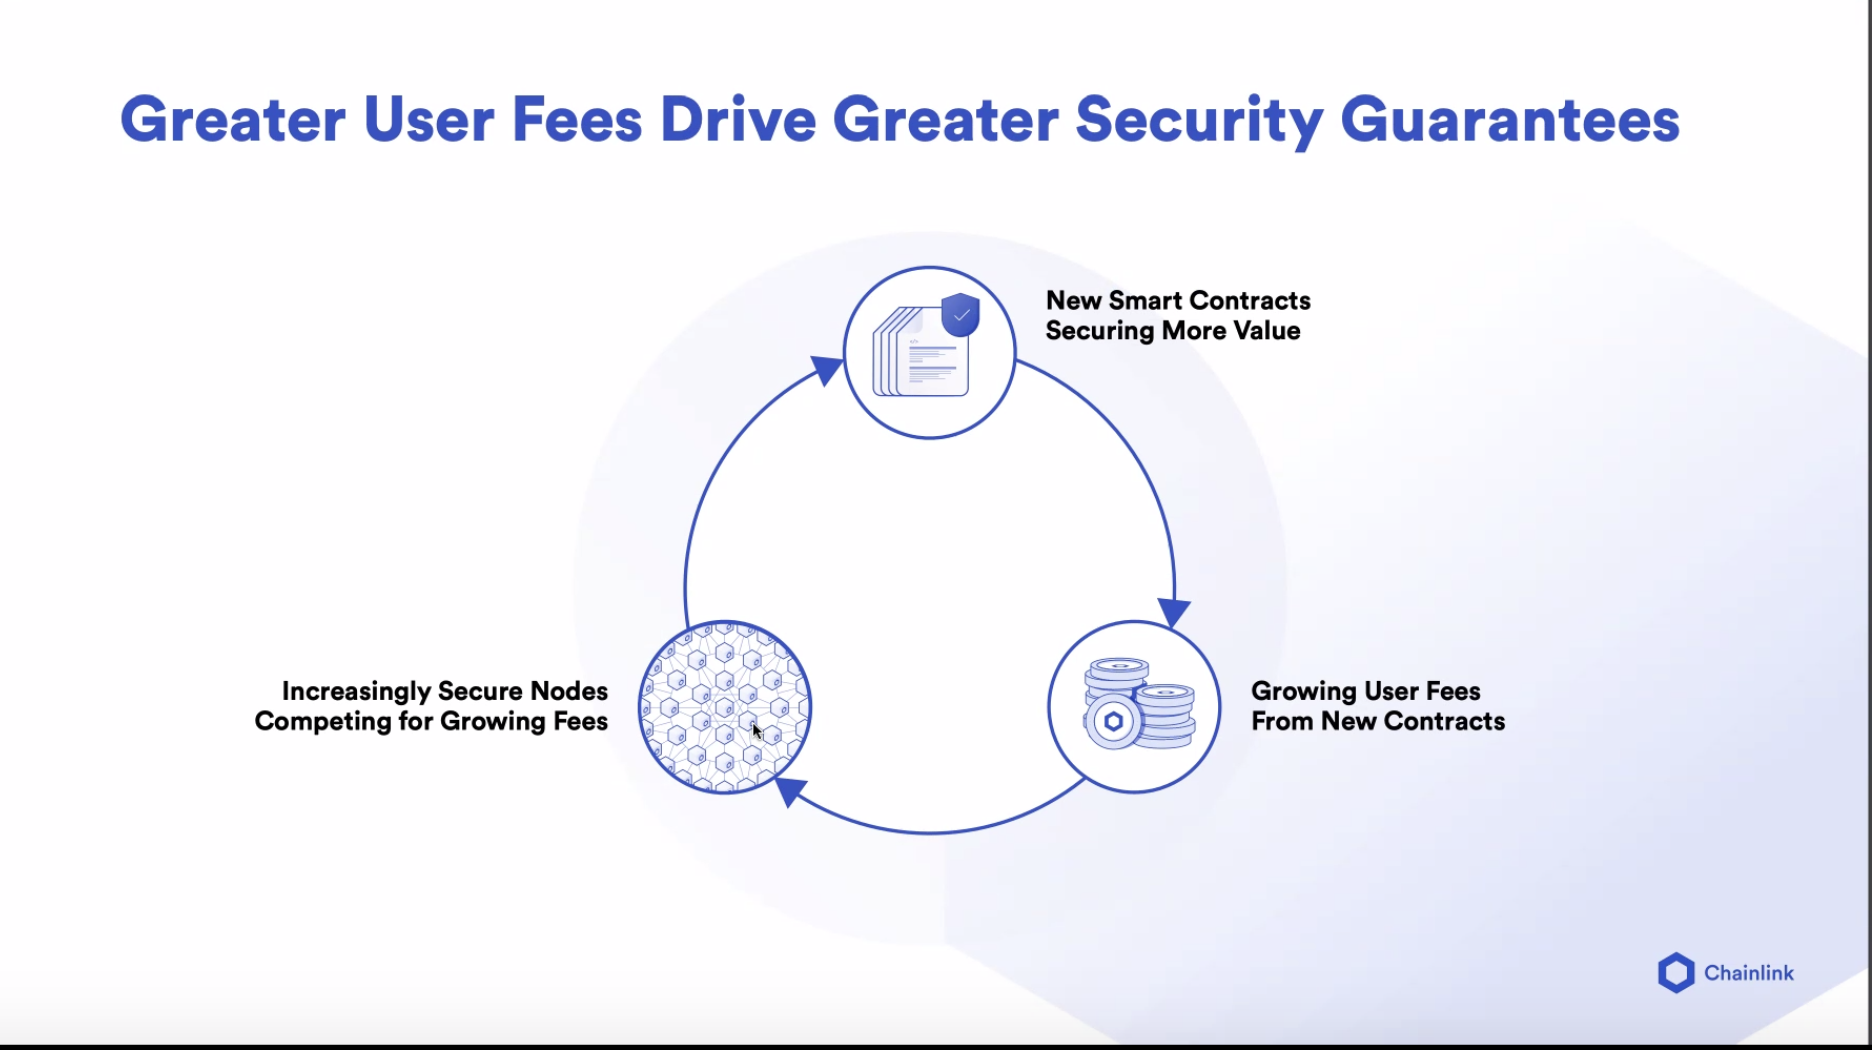 Chainlink: Fees and security